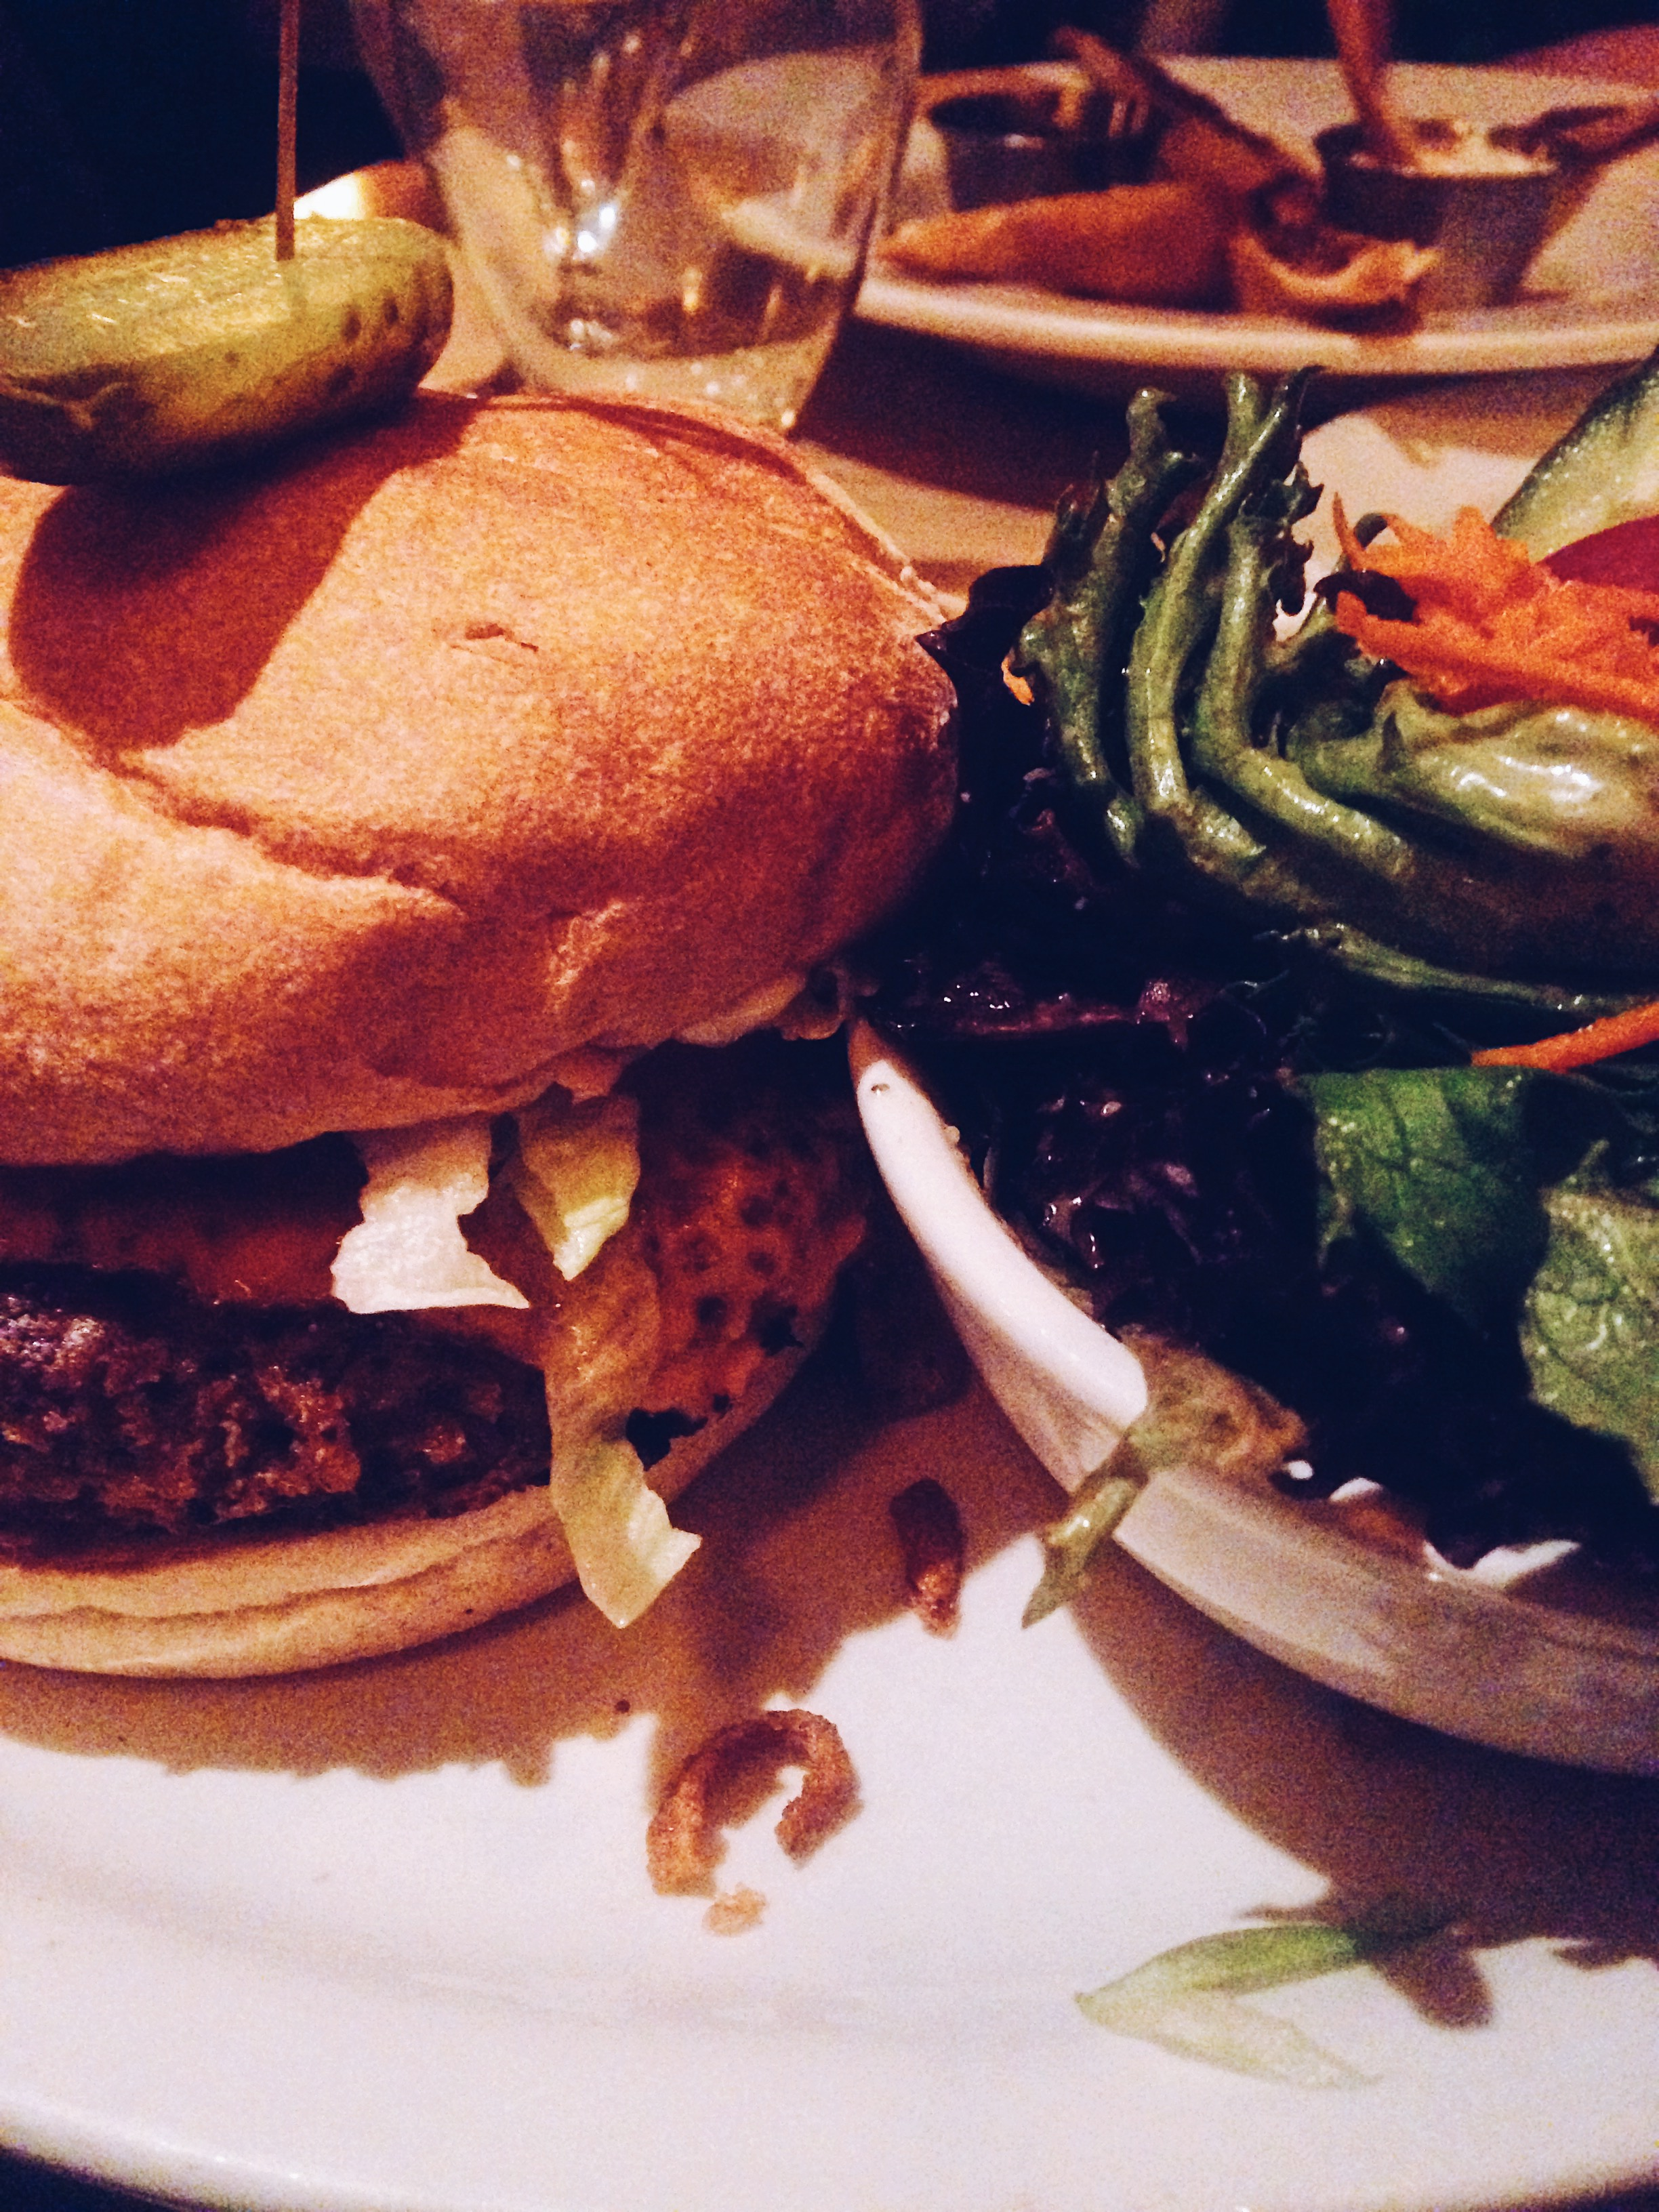 Veggie burgers at Biercraft. Vancouver. Canada. Restaurant Review